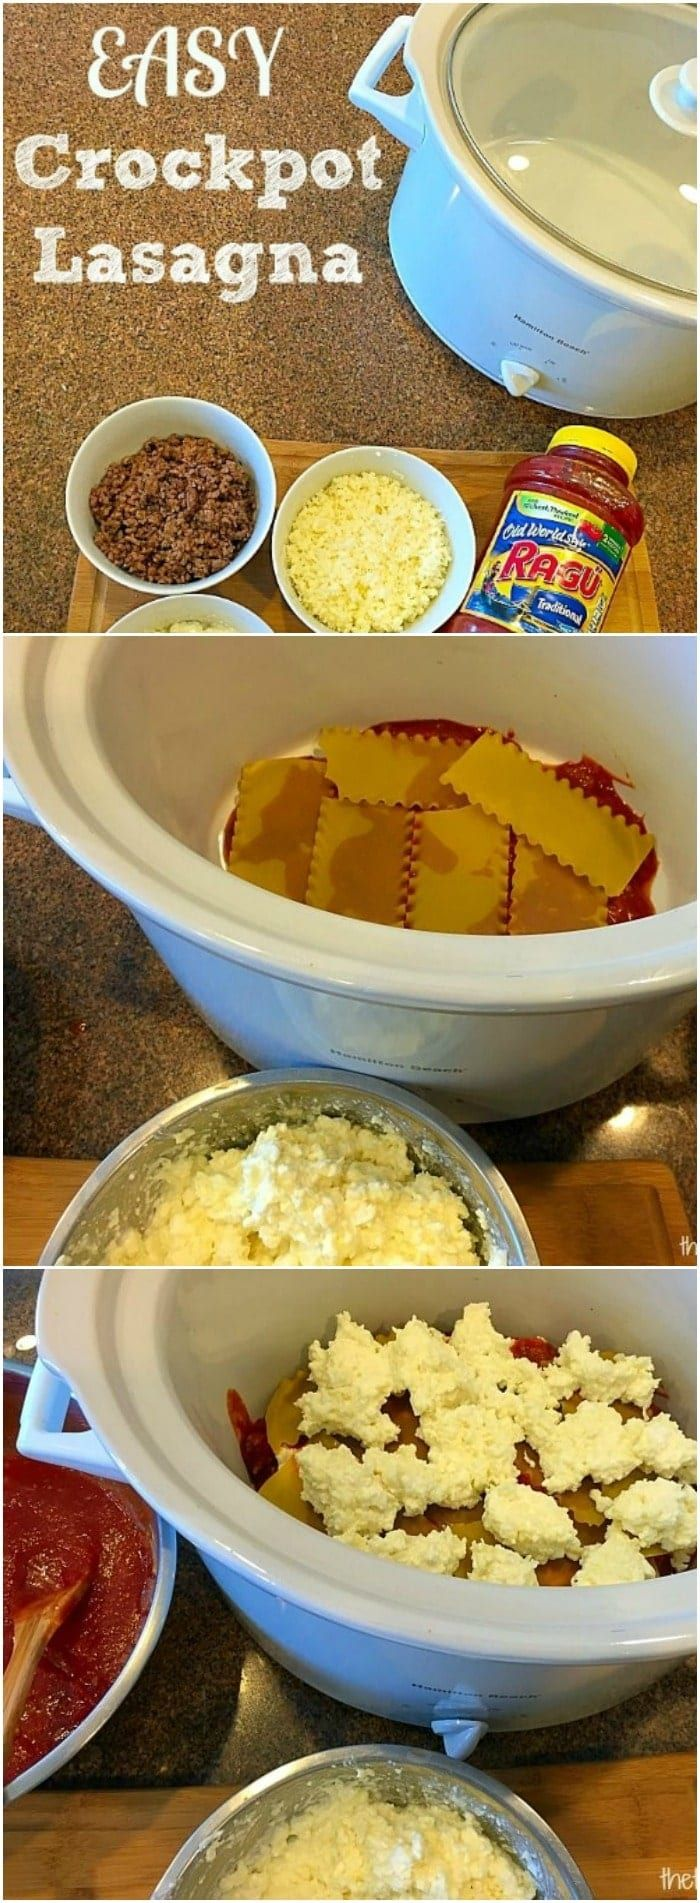 Easy crockpot lasagna recipe with no boiling required. Great pasta dinner your w…